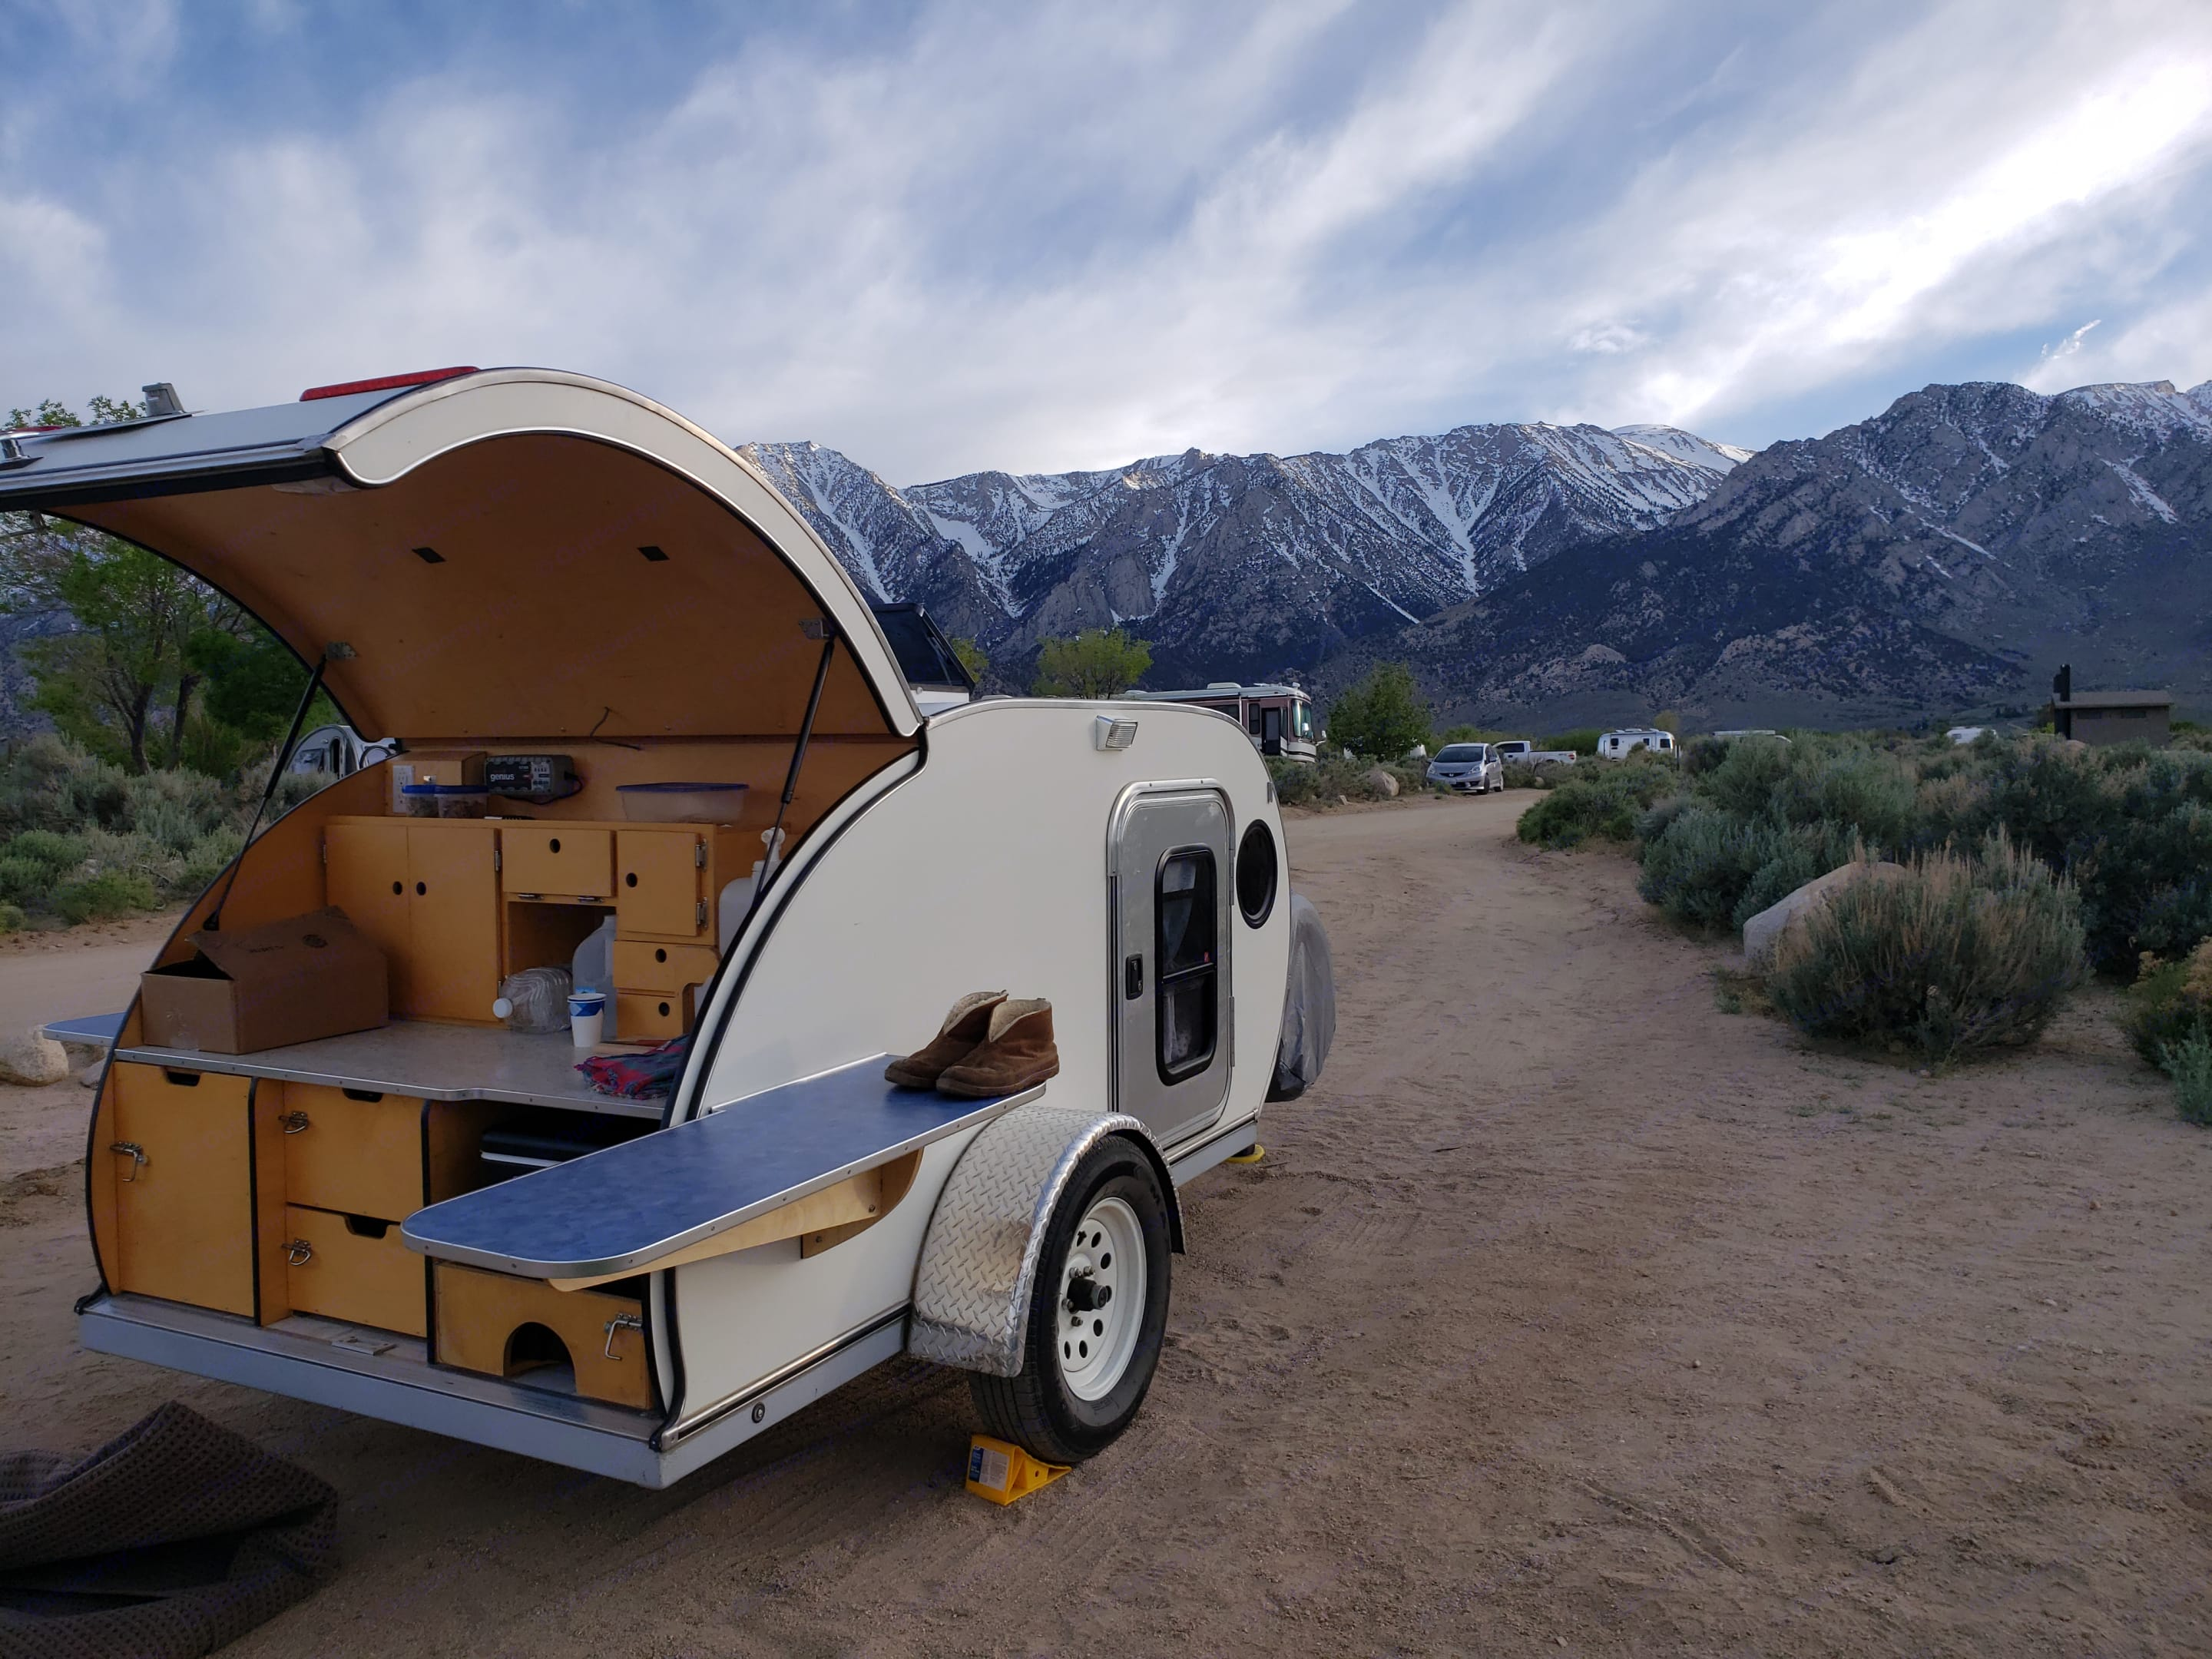 Galley with storage, stove, cooler. American Teardrop Travel Trailer 2014